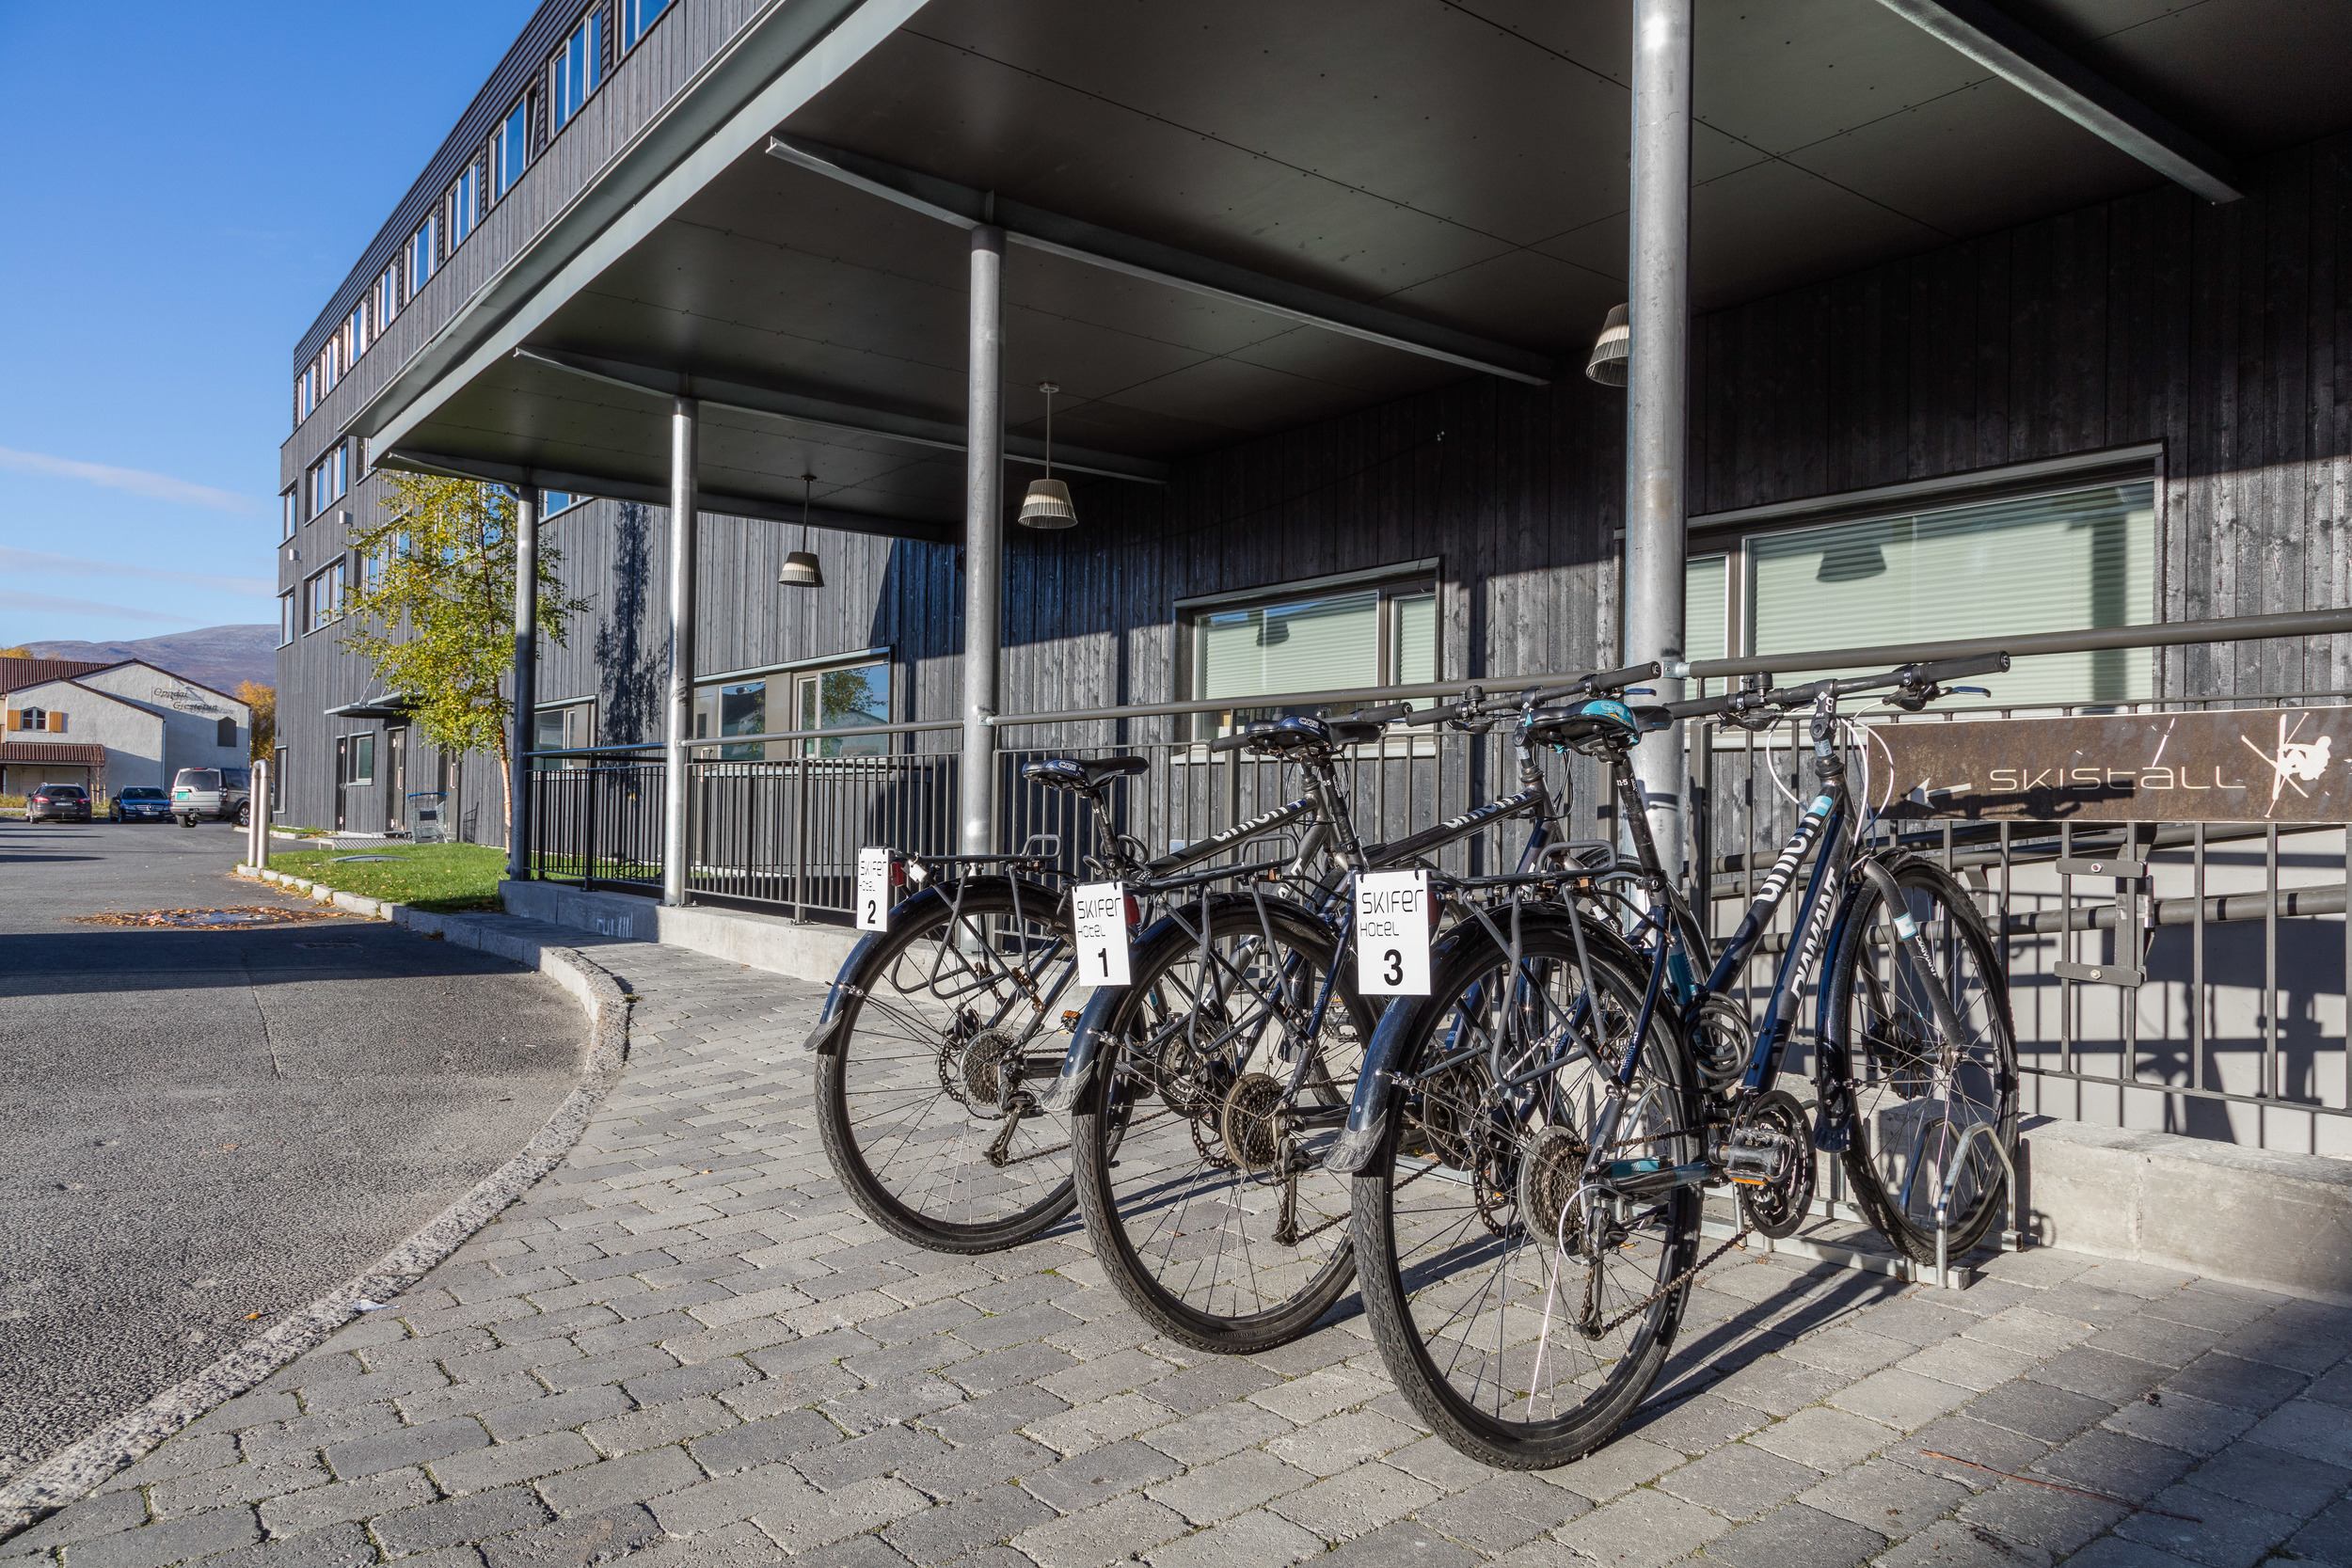 How about outdoor meetings on our bikes?